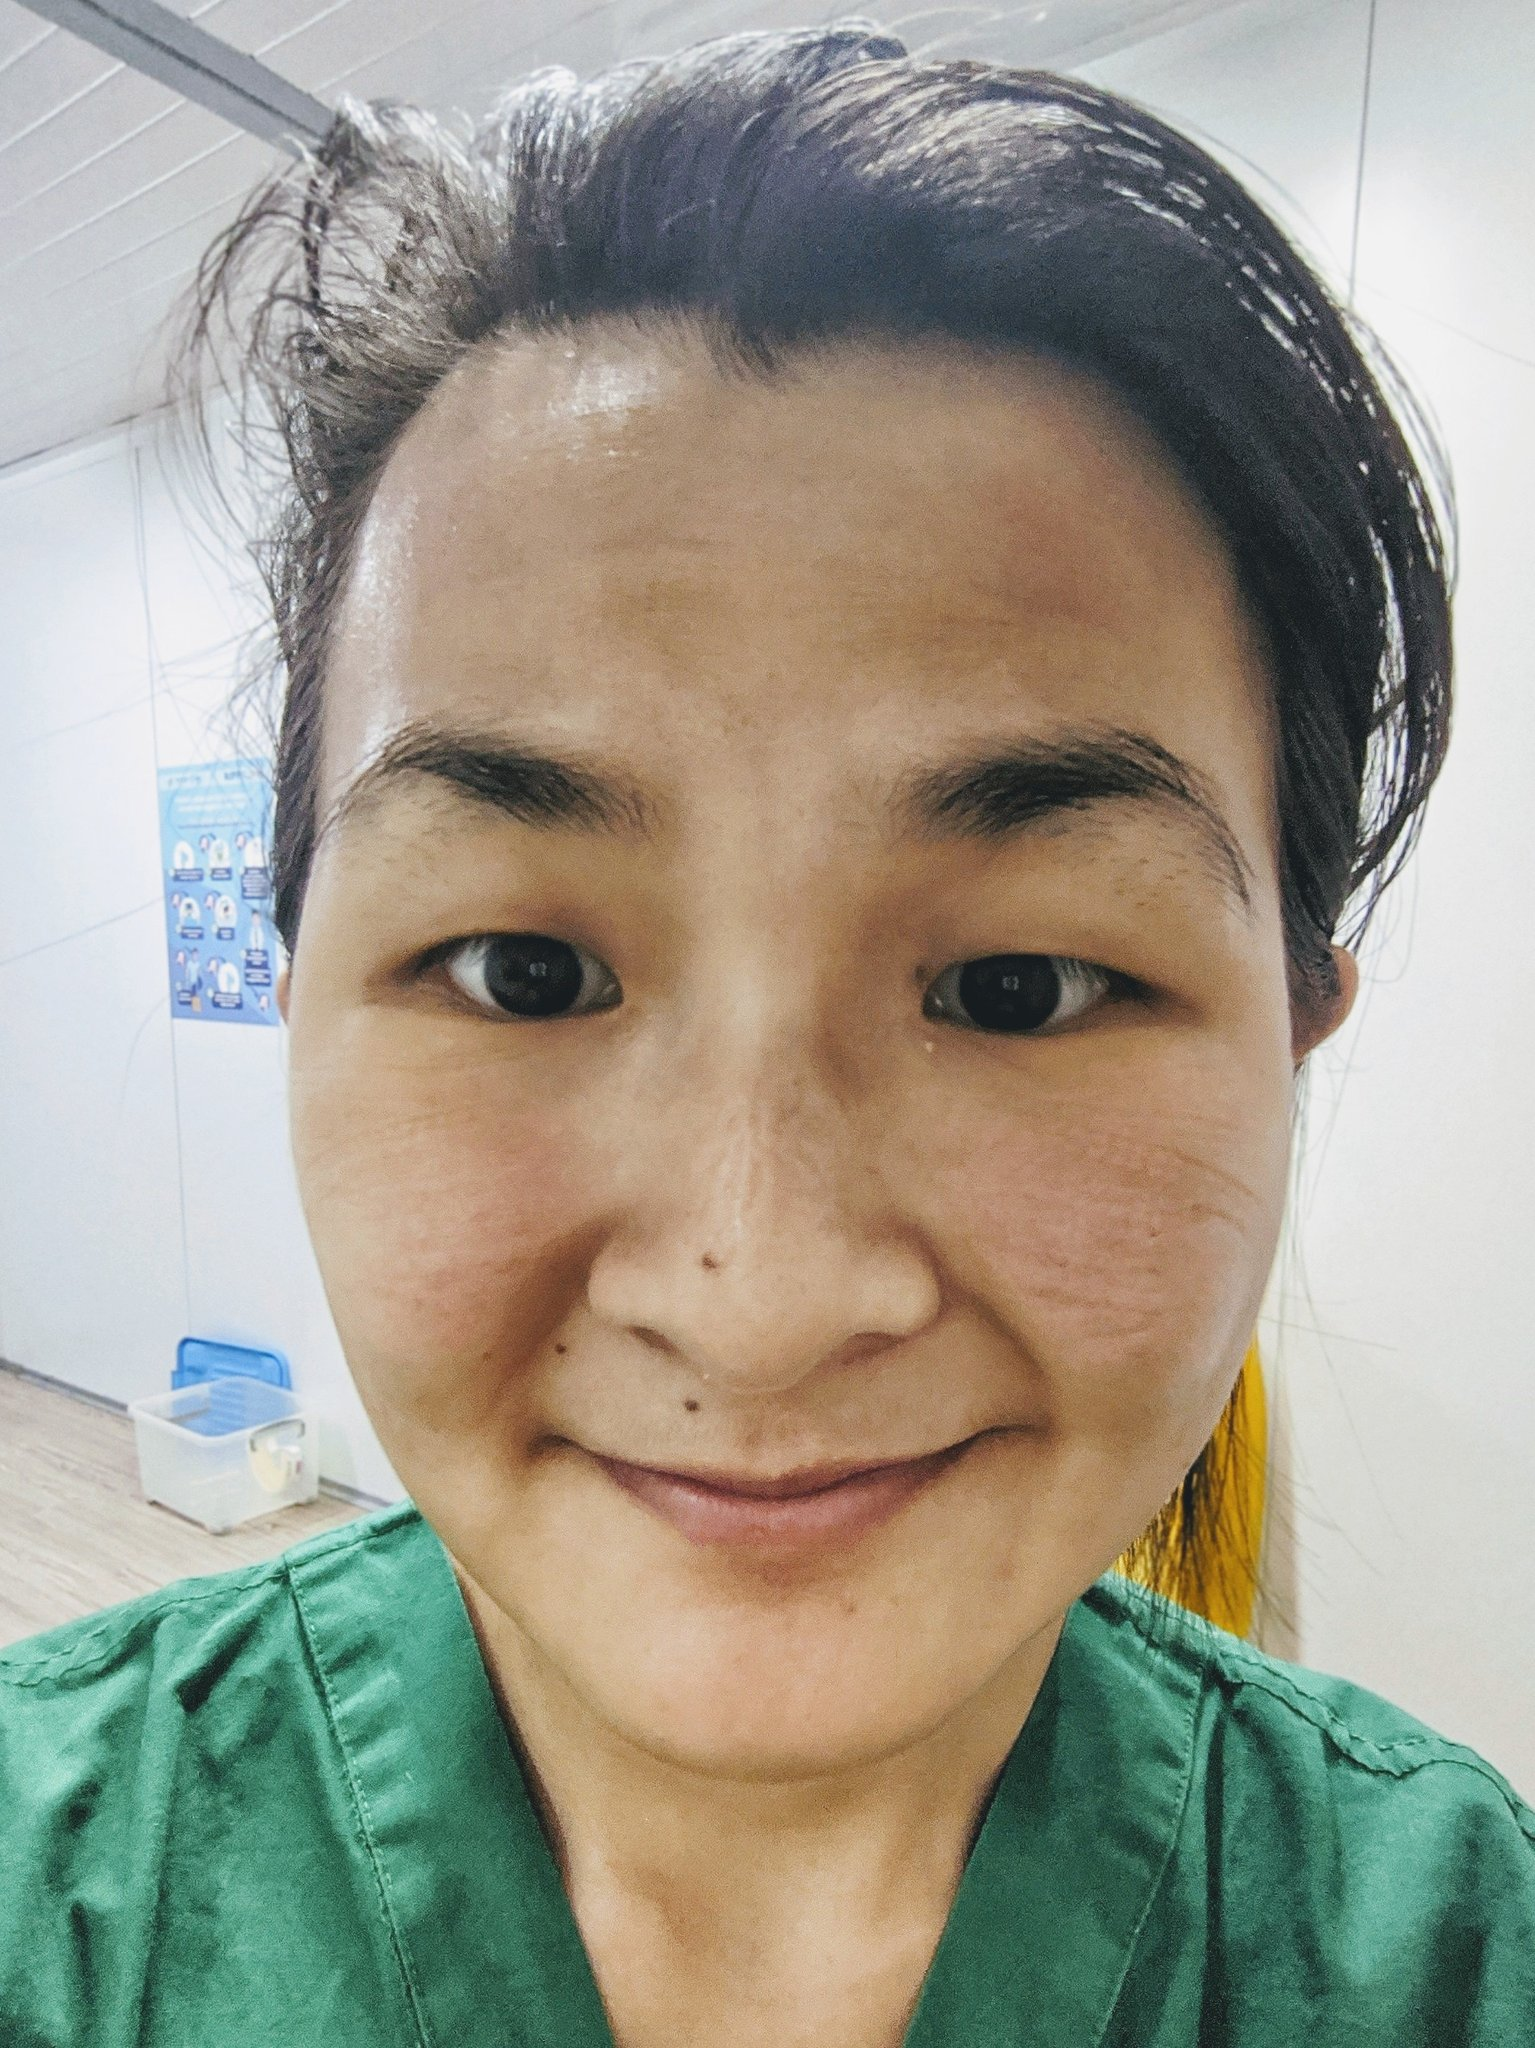 A female doctor takes a selfie with markings on her face from goggles